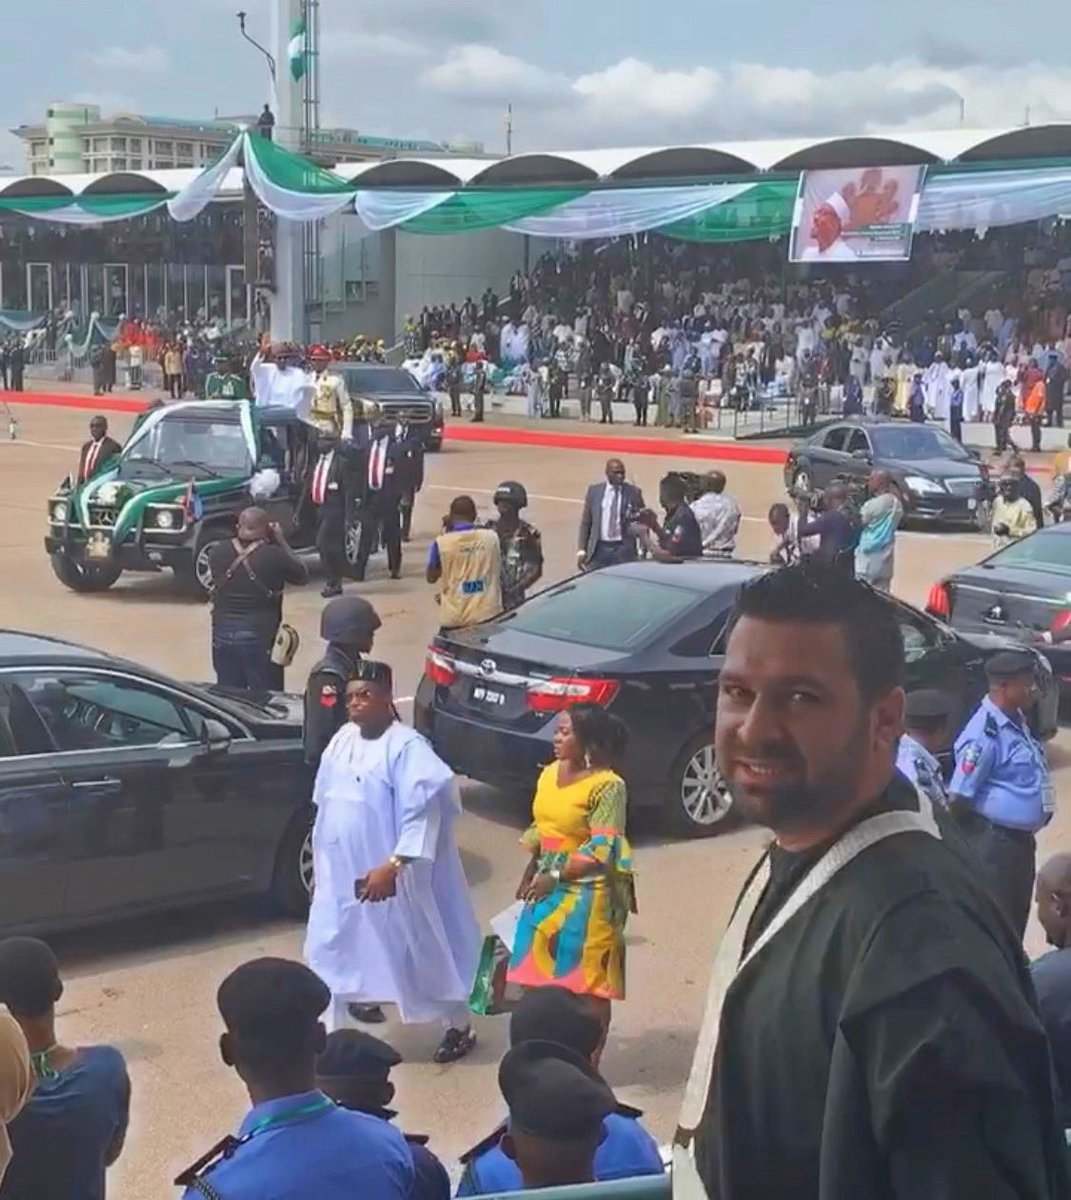 And we are live with His Excellency President @MBuhari as he drives around Eagle Square #DemocracyAt20 #DemocracyDay<br>http://pic.twitter.com/v5o8rsYfNX